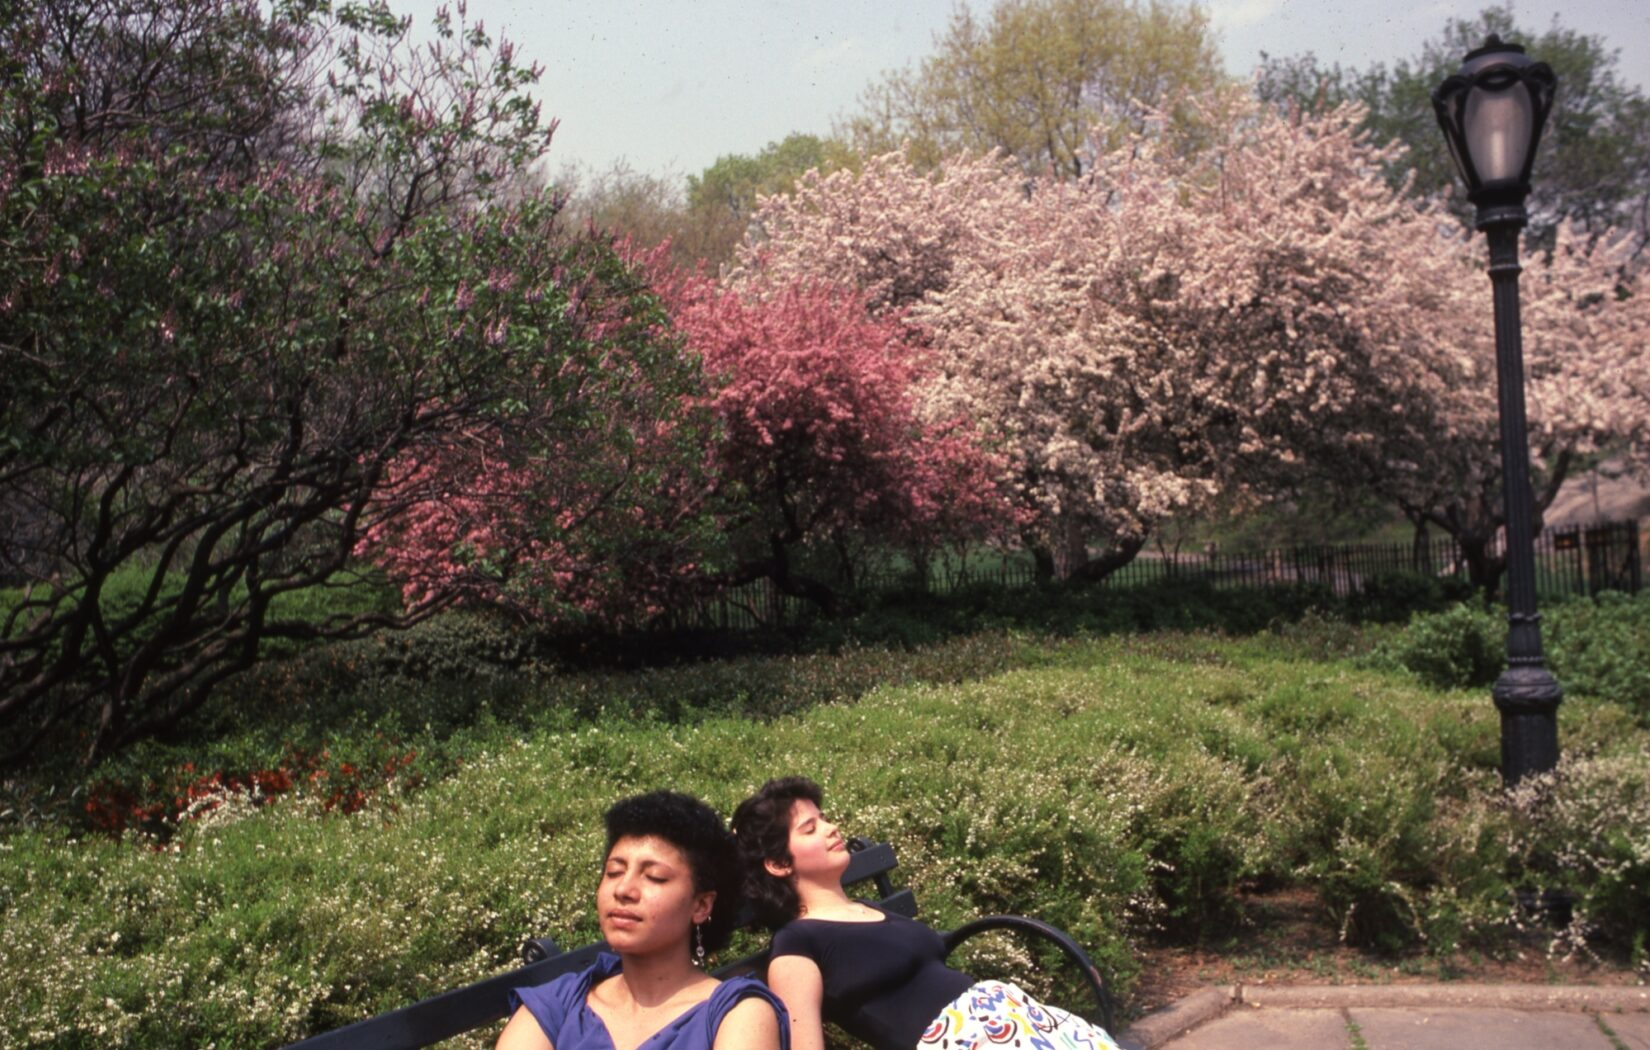 Two young women appear to be napping on a bench in the garden, surrounded by spring blossoms.